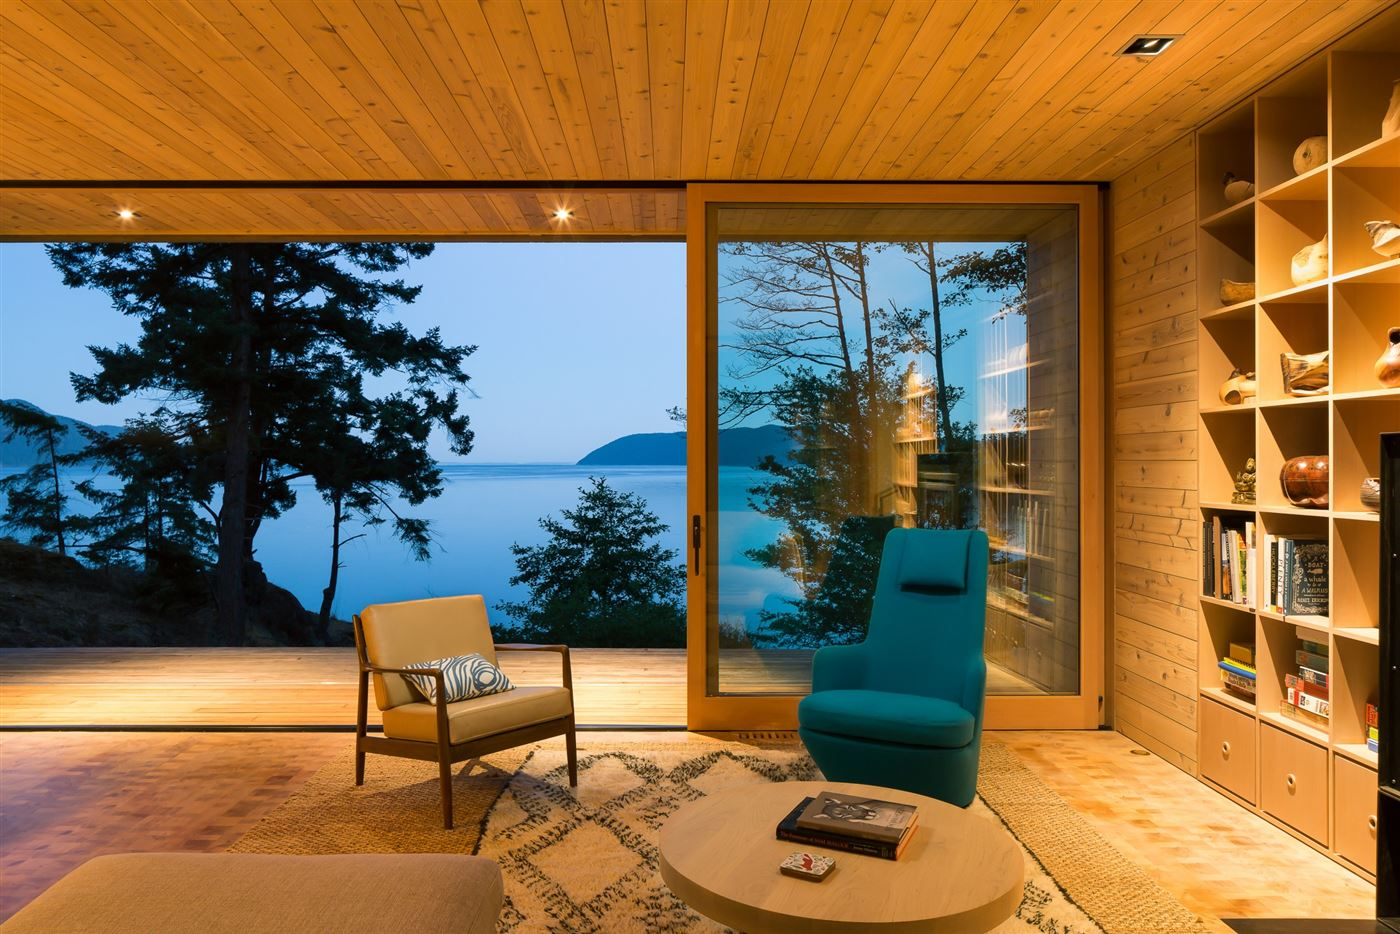 Wooden interior living rom with a view to the ocean